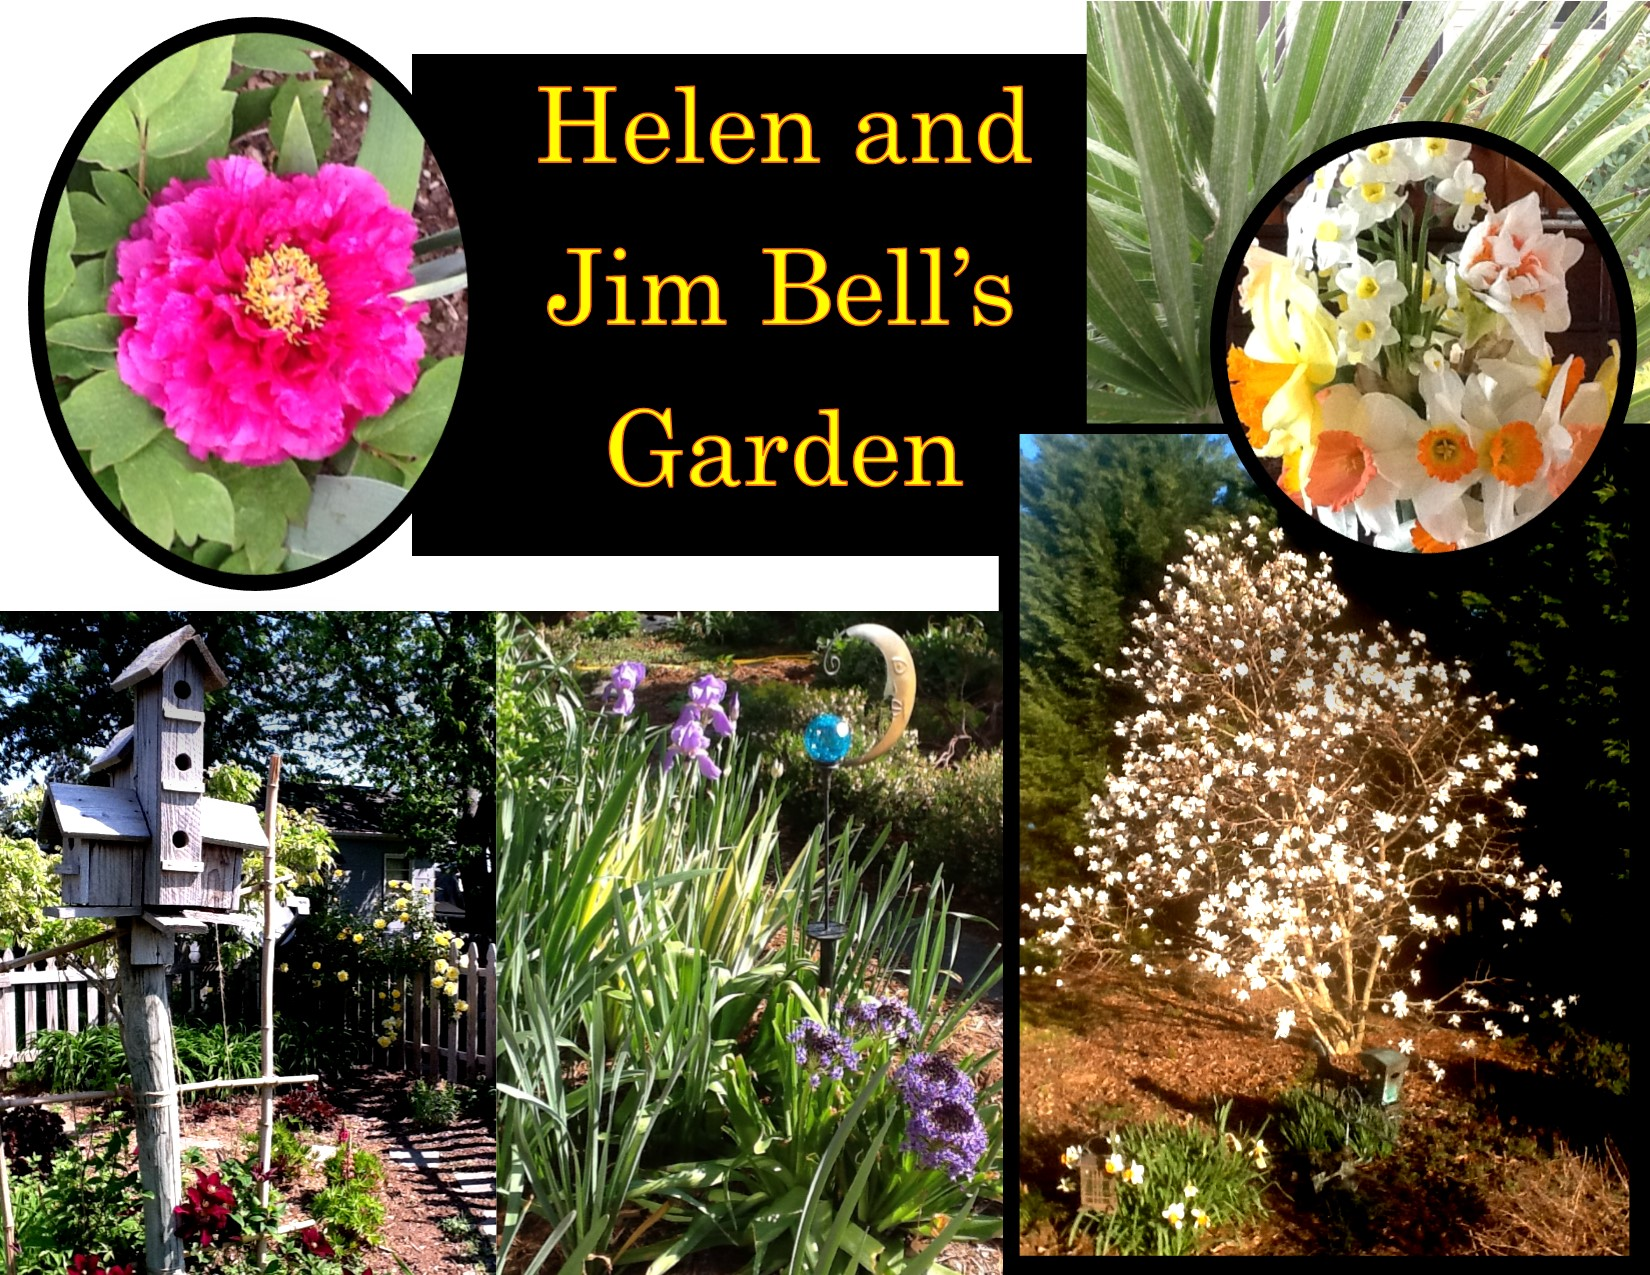 Garden Photos- Helen and Jim Bell